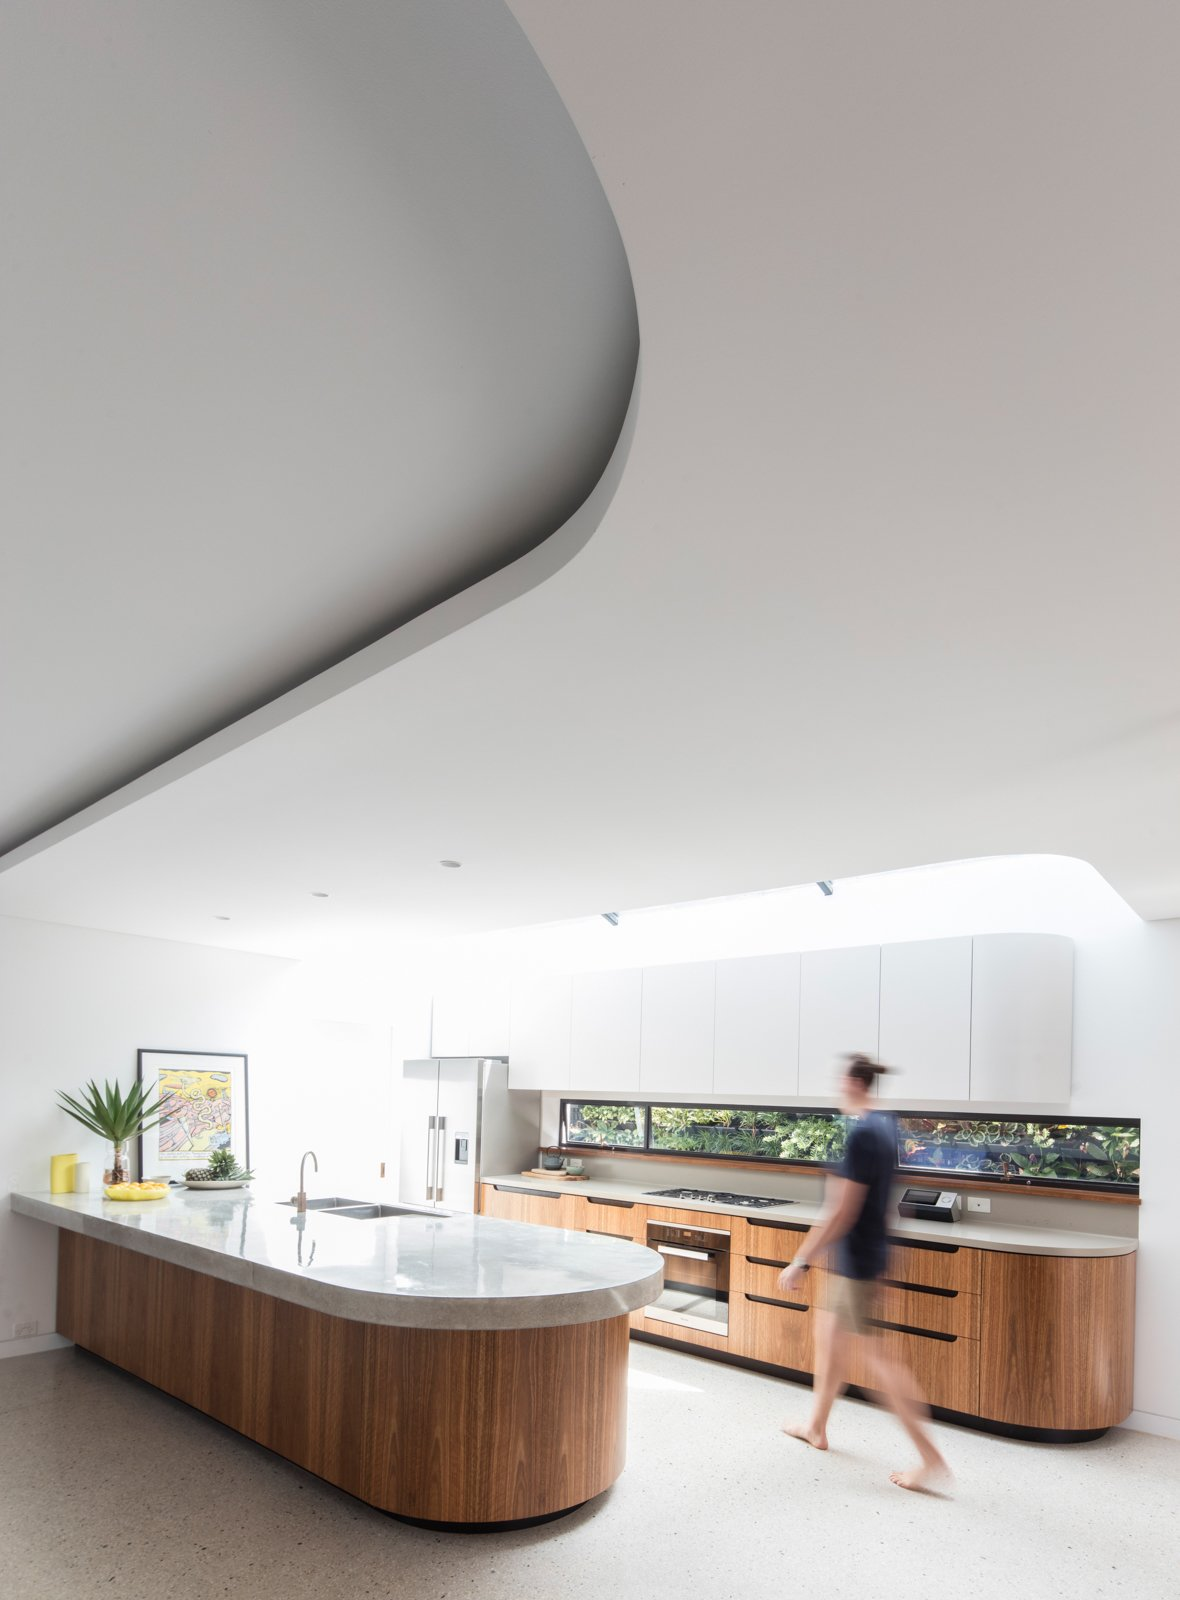 Kitchen, Refrigerator, Cooktops, Drop In Sink, Range, and Wall Oven  Conway Atkins House from A Heritage Art Deco House in Australia Gets a Modern Update